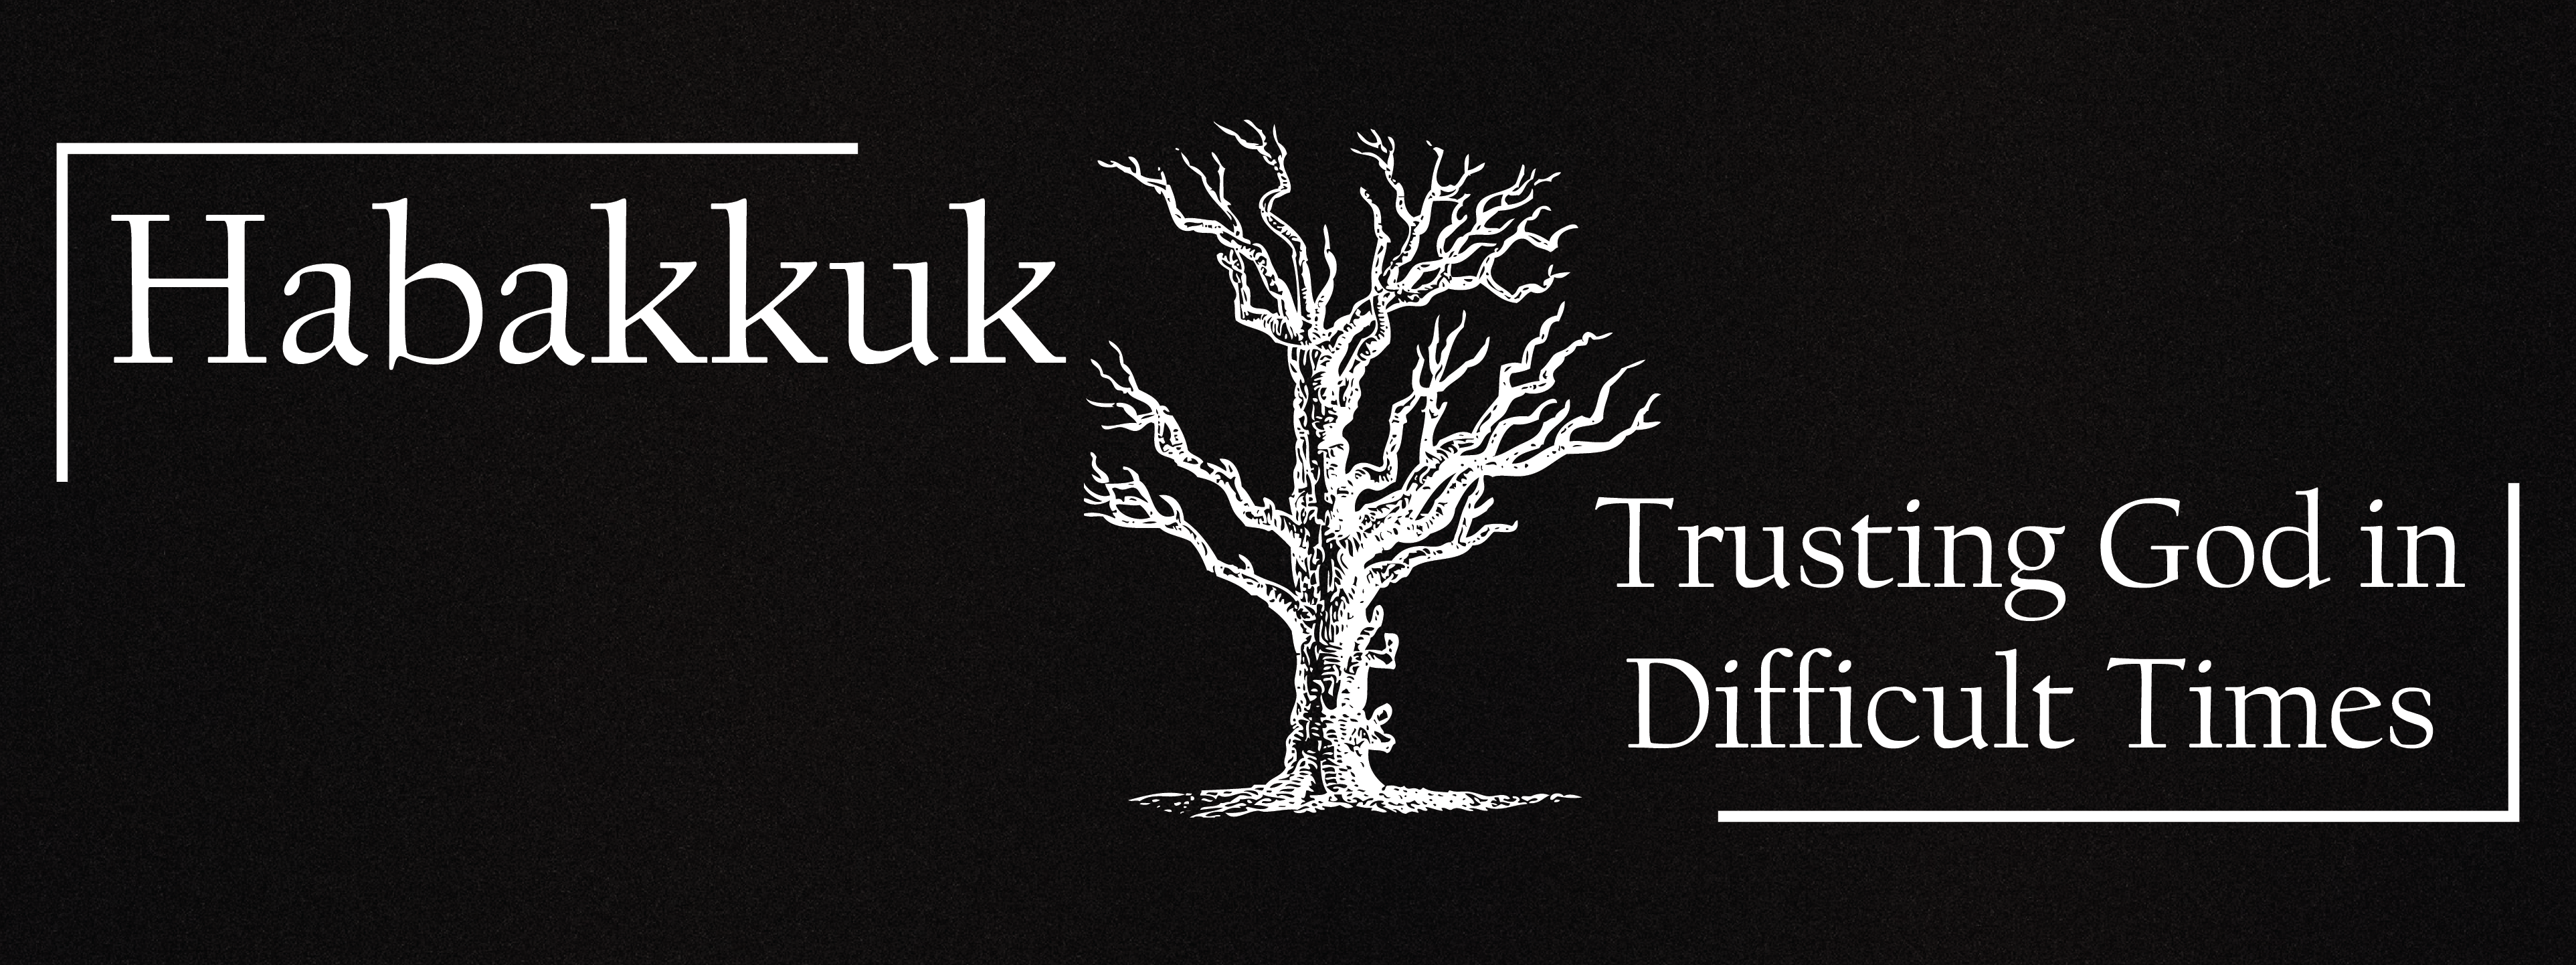 Trusting God in Difficult Times: Habakkuk